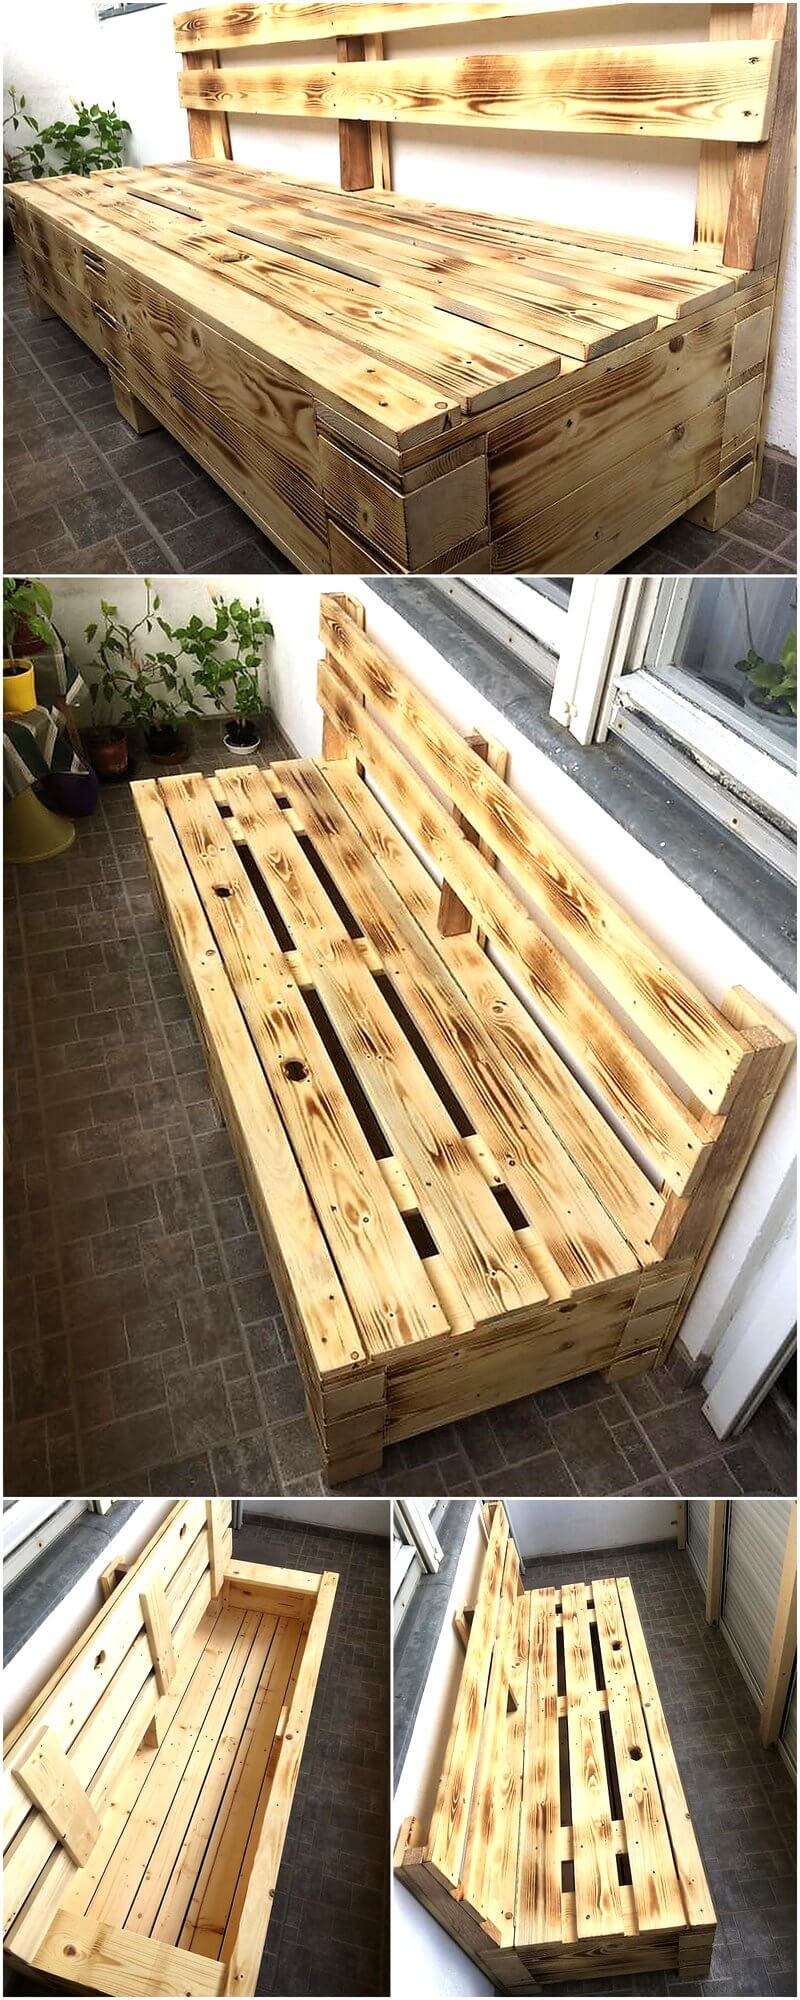 Recycled Wooden Pallet Bench with Storage